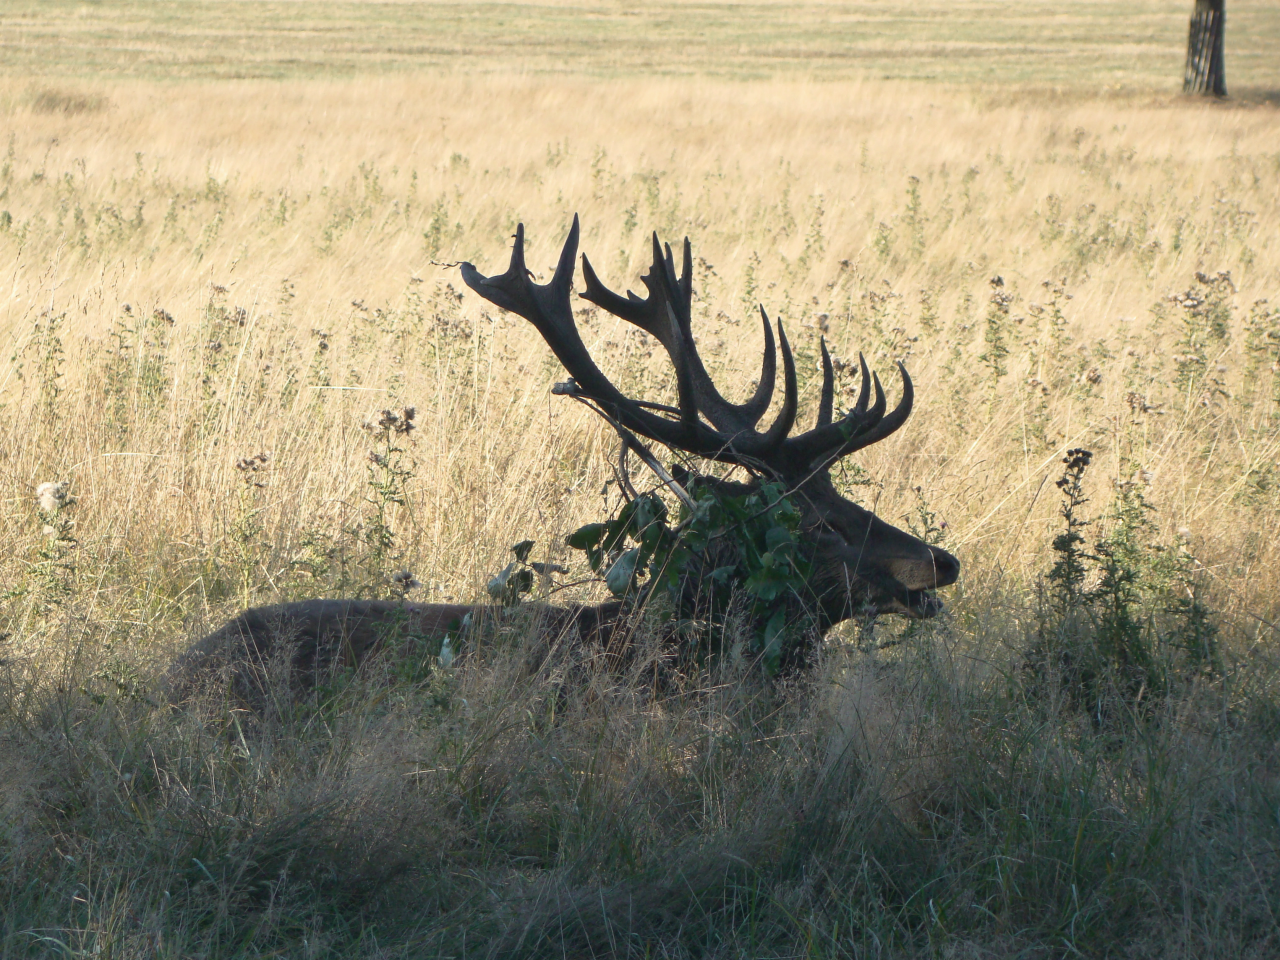 Red deer in Richmond Park, photographed on 17 September 2018